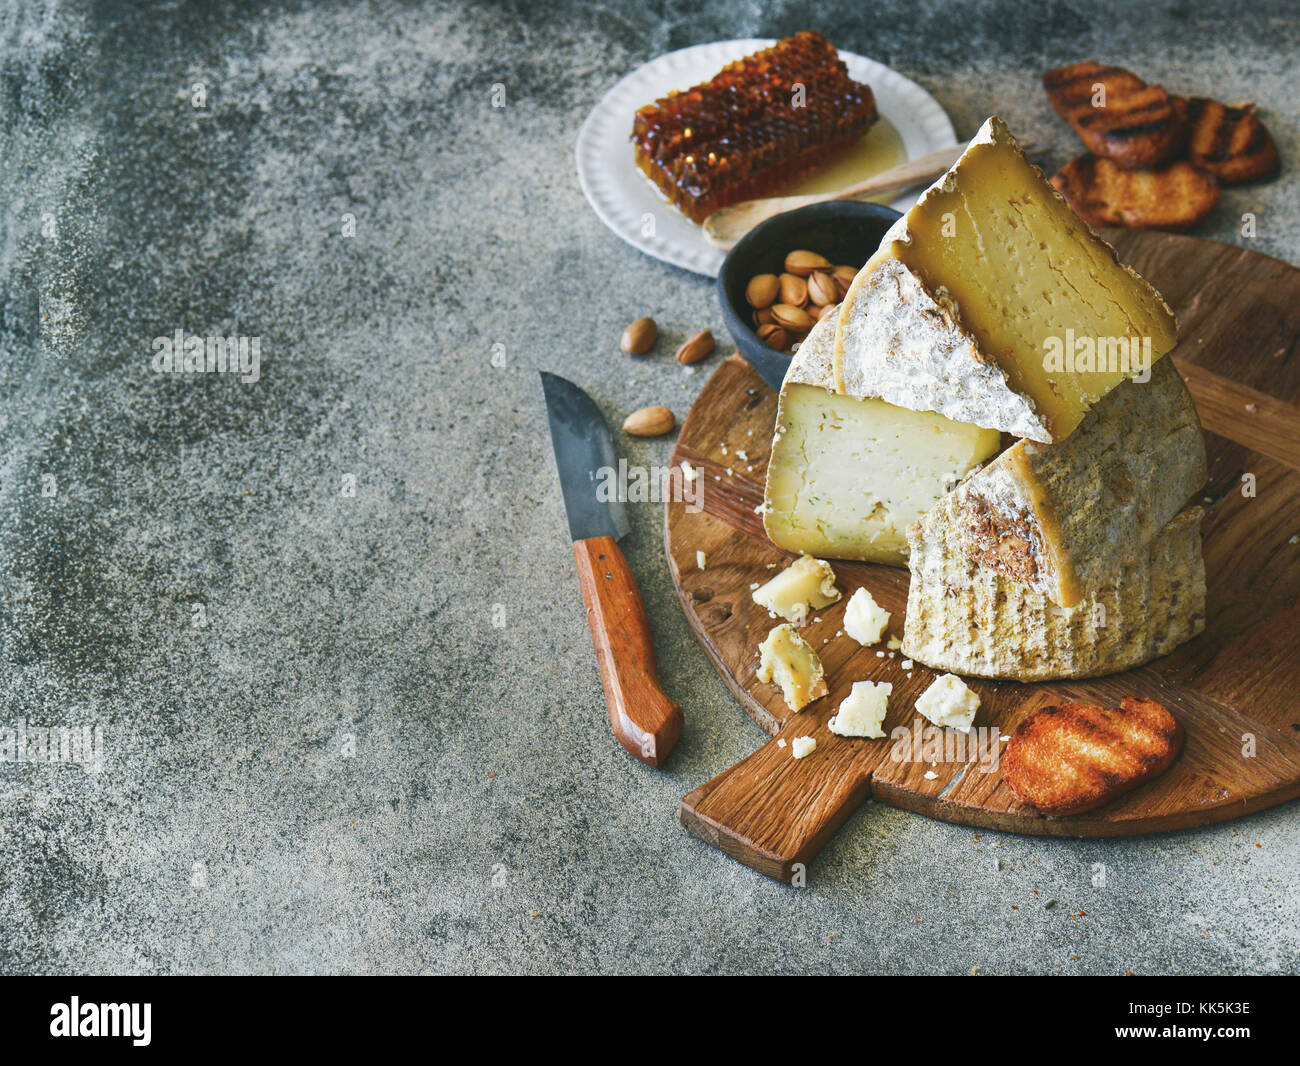 Cheese assortment and snacks on rustic wooden board, copy space - Stock Image